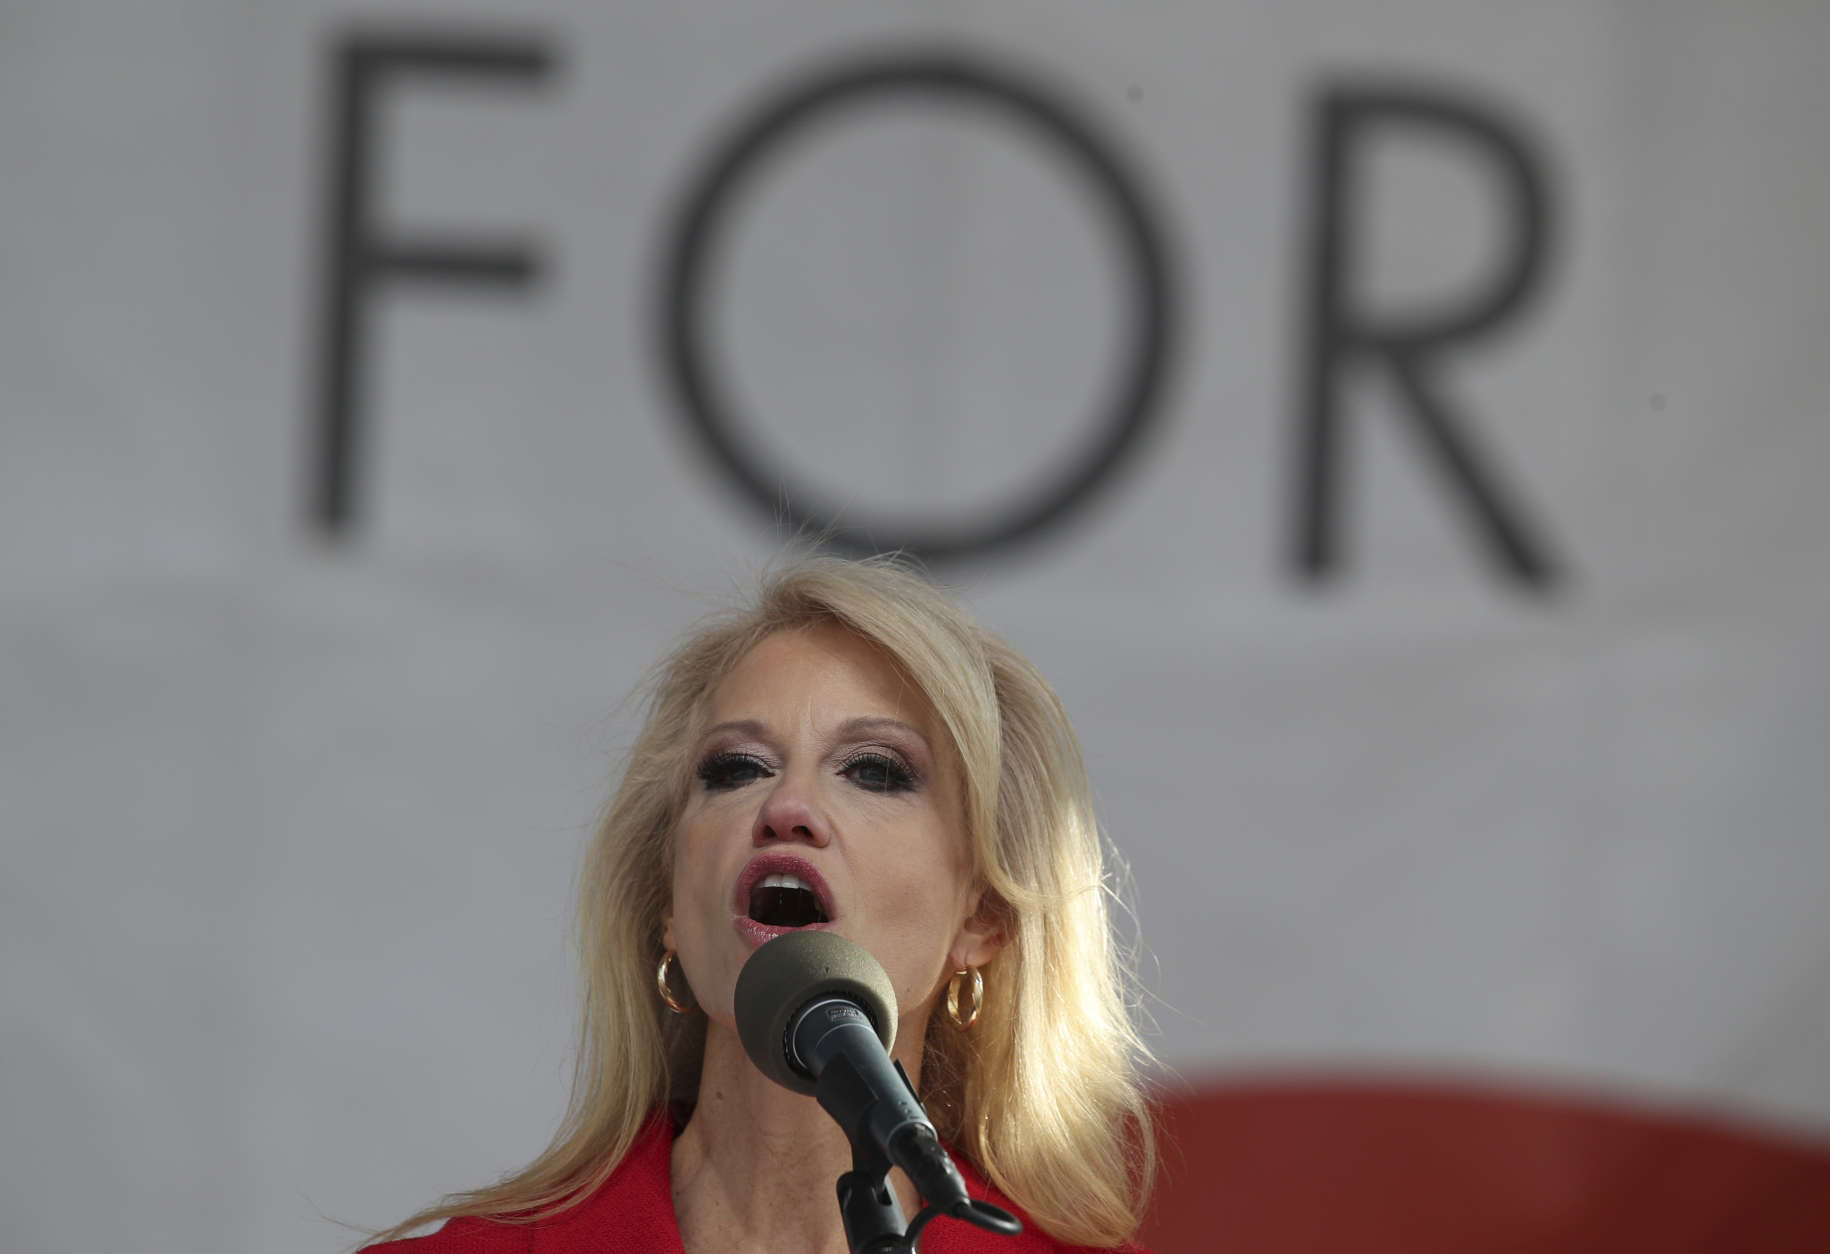 Counselor to the President Kellyanne Conway speaks at the March for Life on the National Mall in Washington, Friday, Jan. 27, 2017. (AP Photo/Manuel Balce Ceneta)